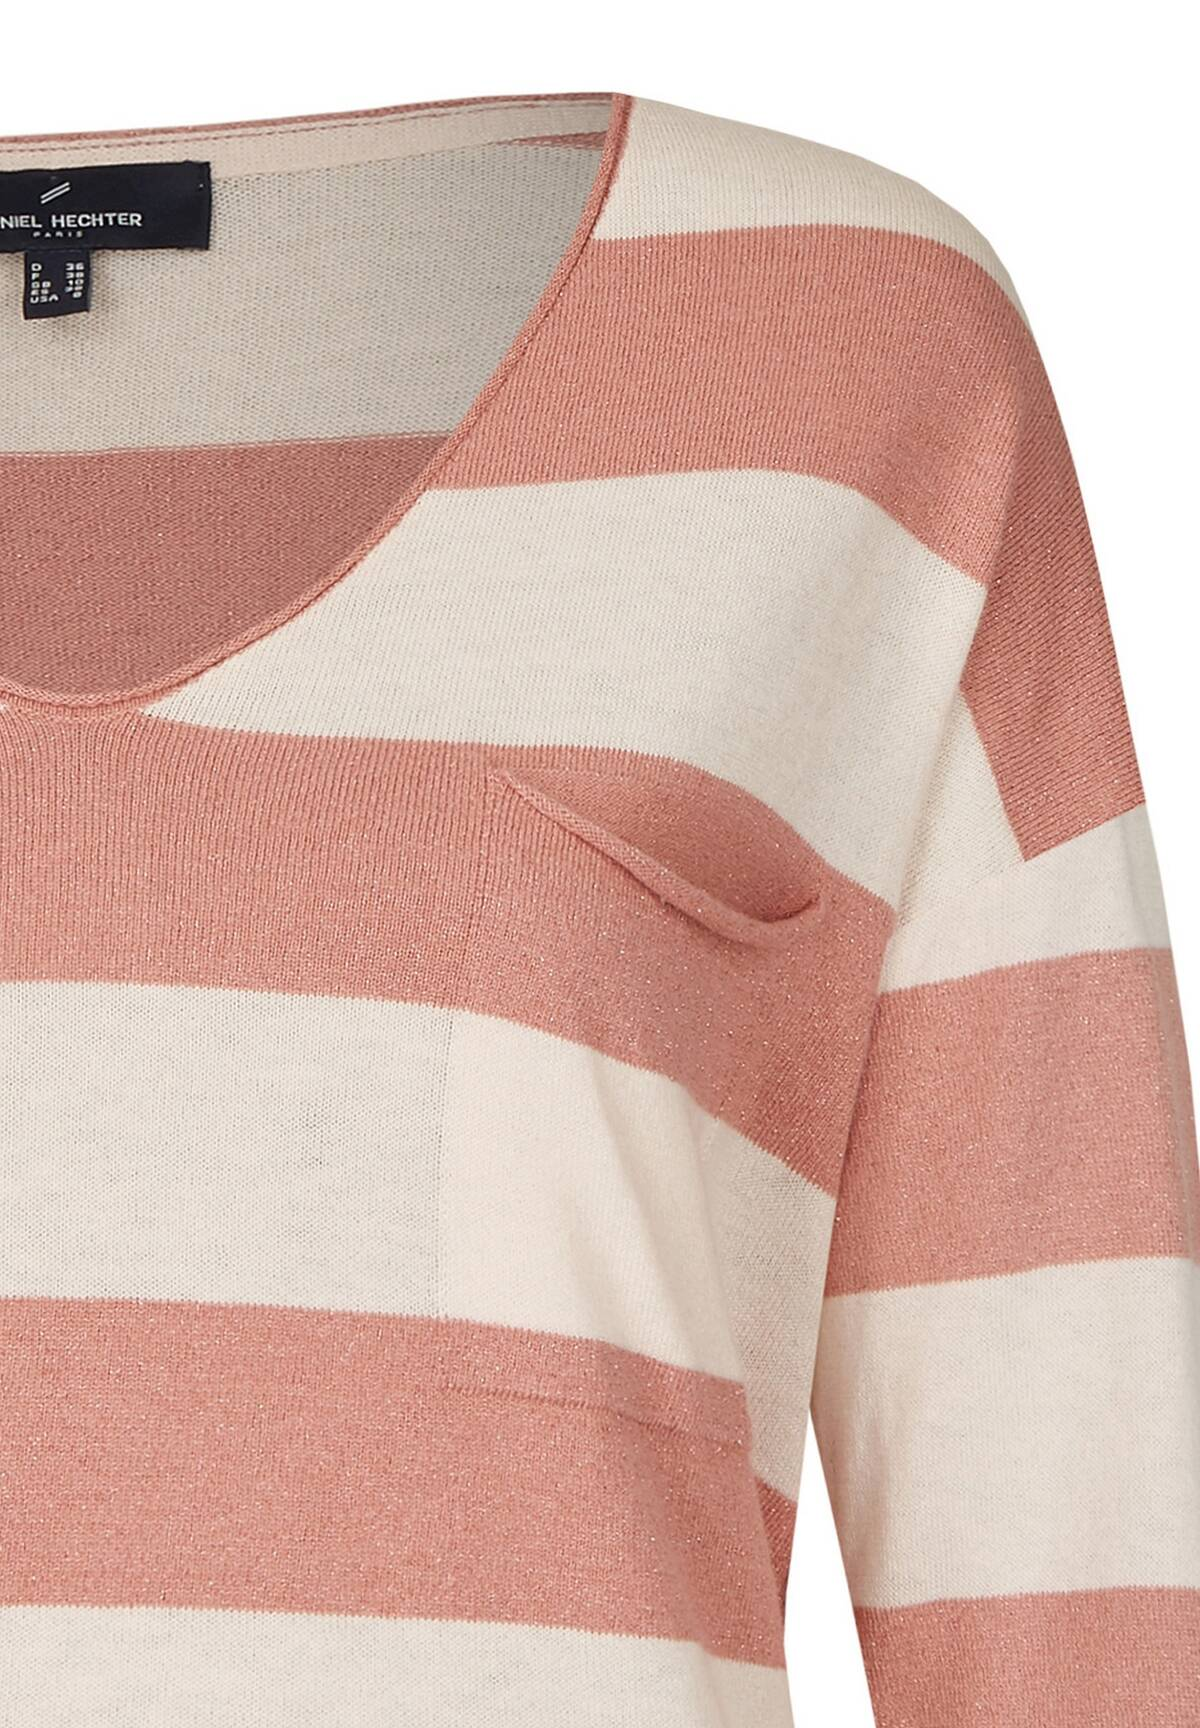 Sommerlicher Strick Pullover / Knit Jumper